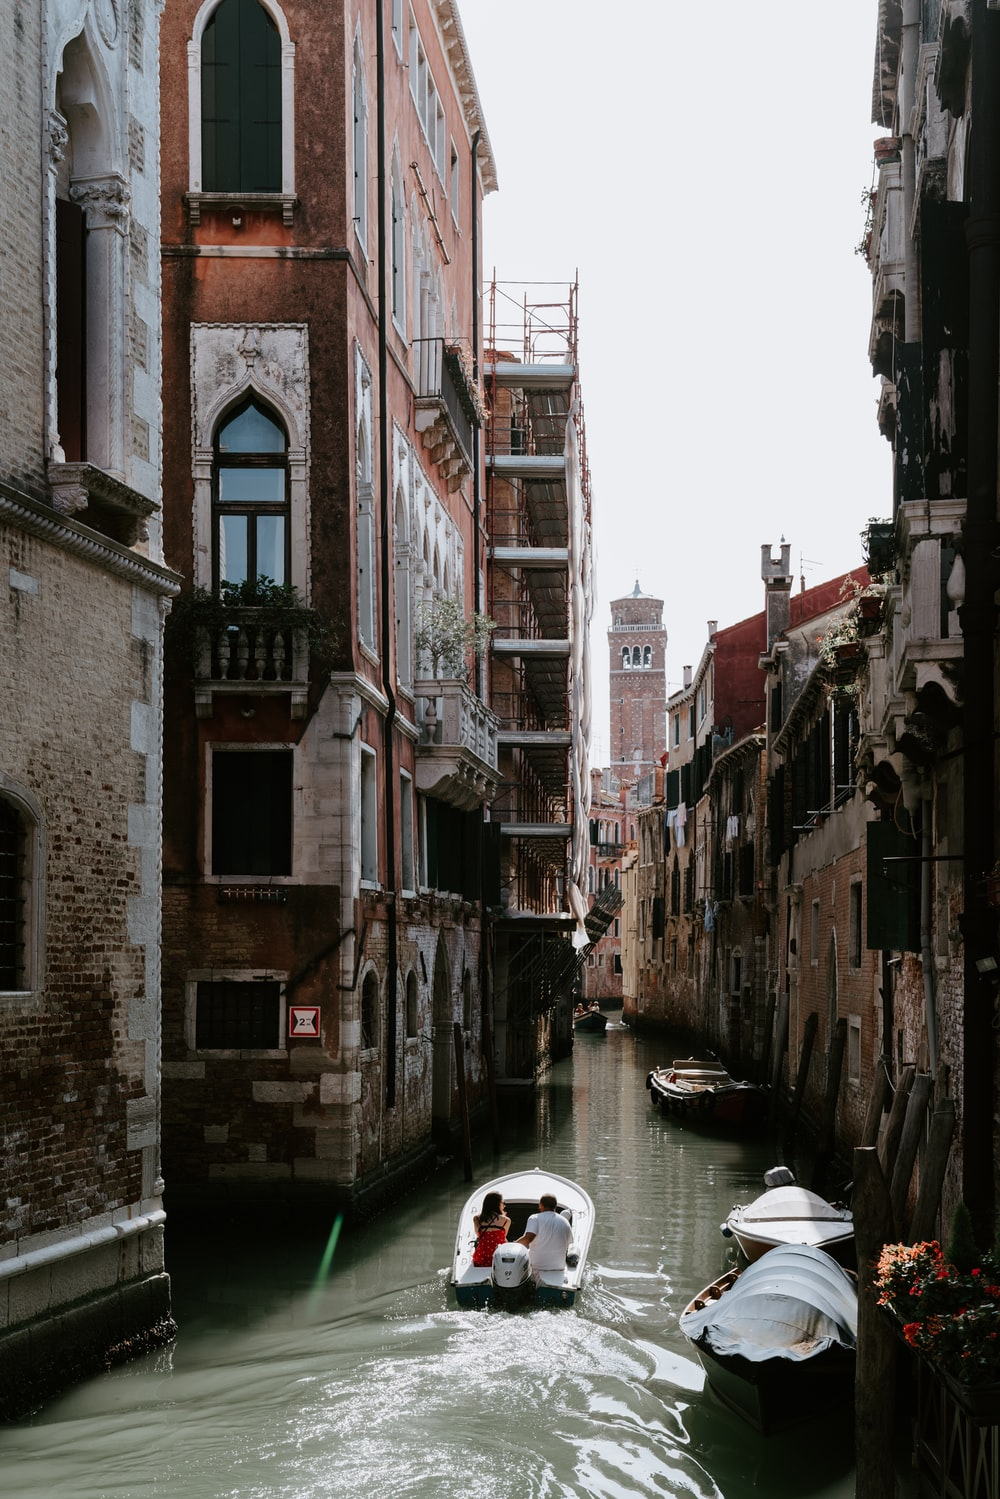 white boat on canal during daytime